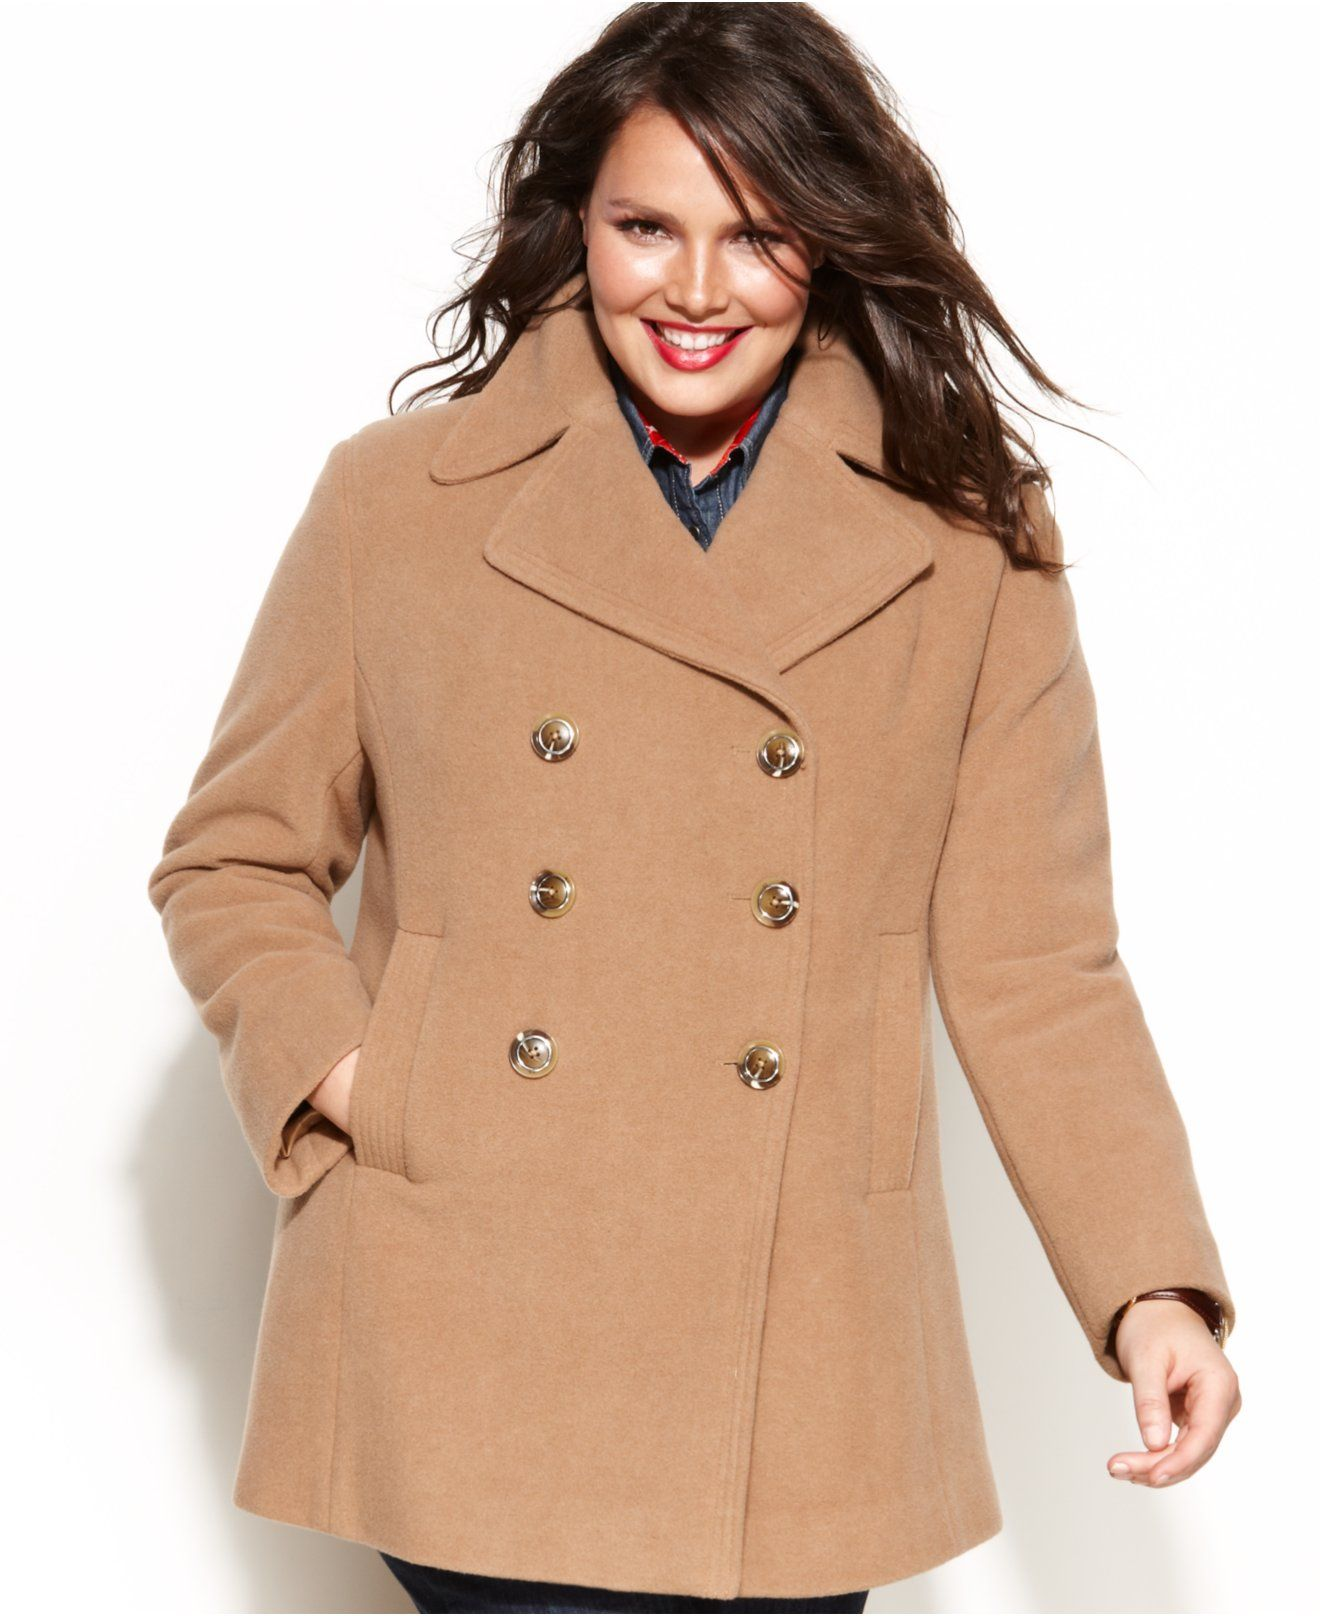 0db0db84e2 Kenneth Cole Reaction Plus Size Double-Breasted Wool-Blend Pea Coat - Coats  - Women - Macy s